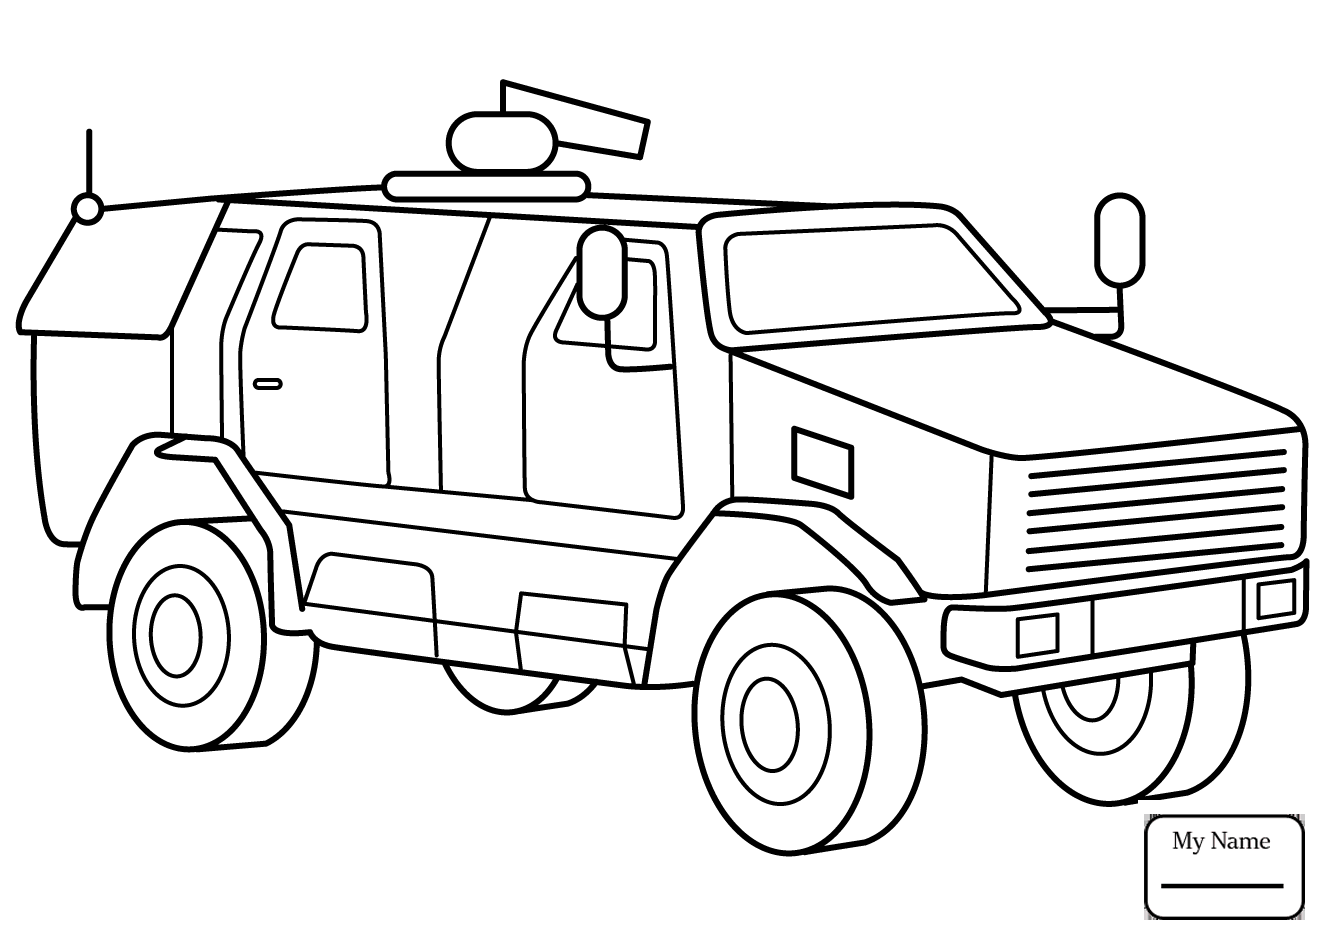 military coloring pages military coloring pages to download and print for free pages coloring military